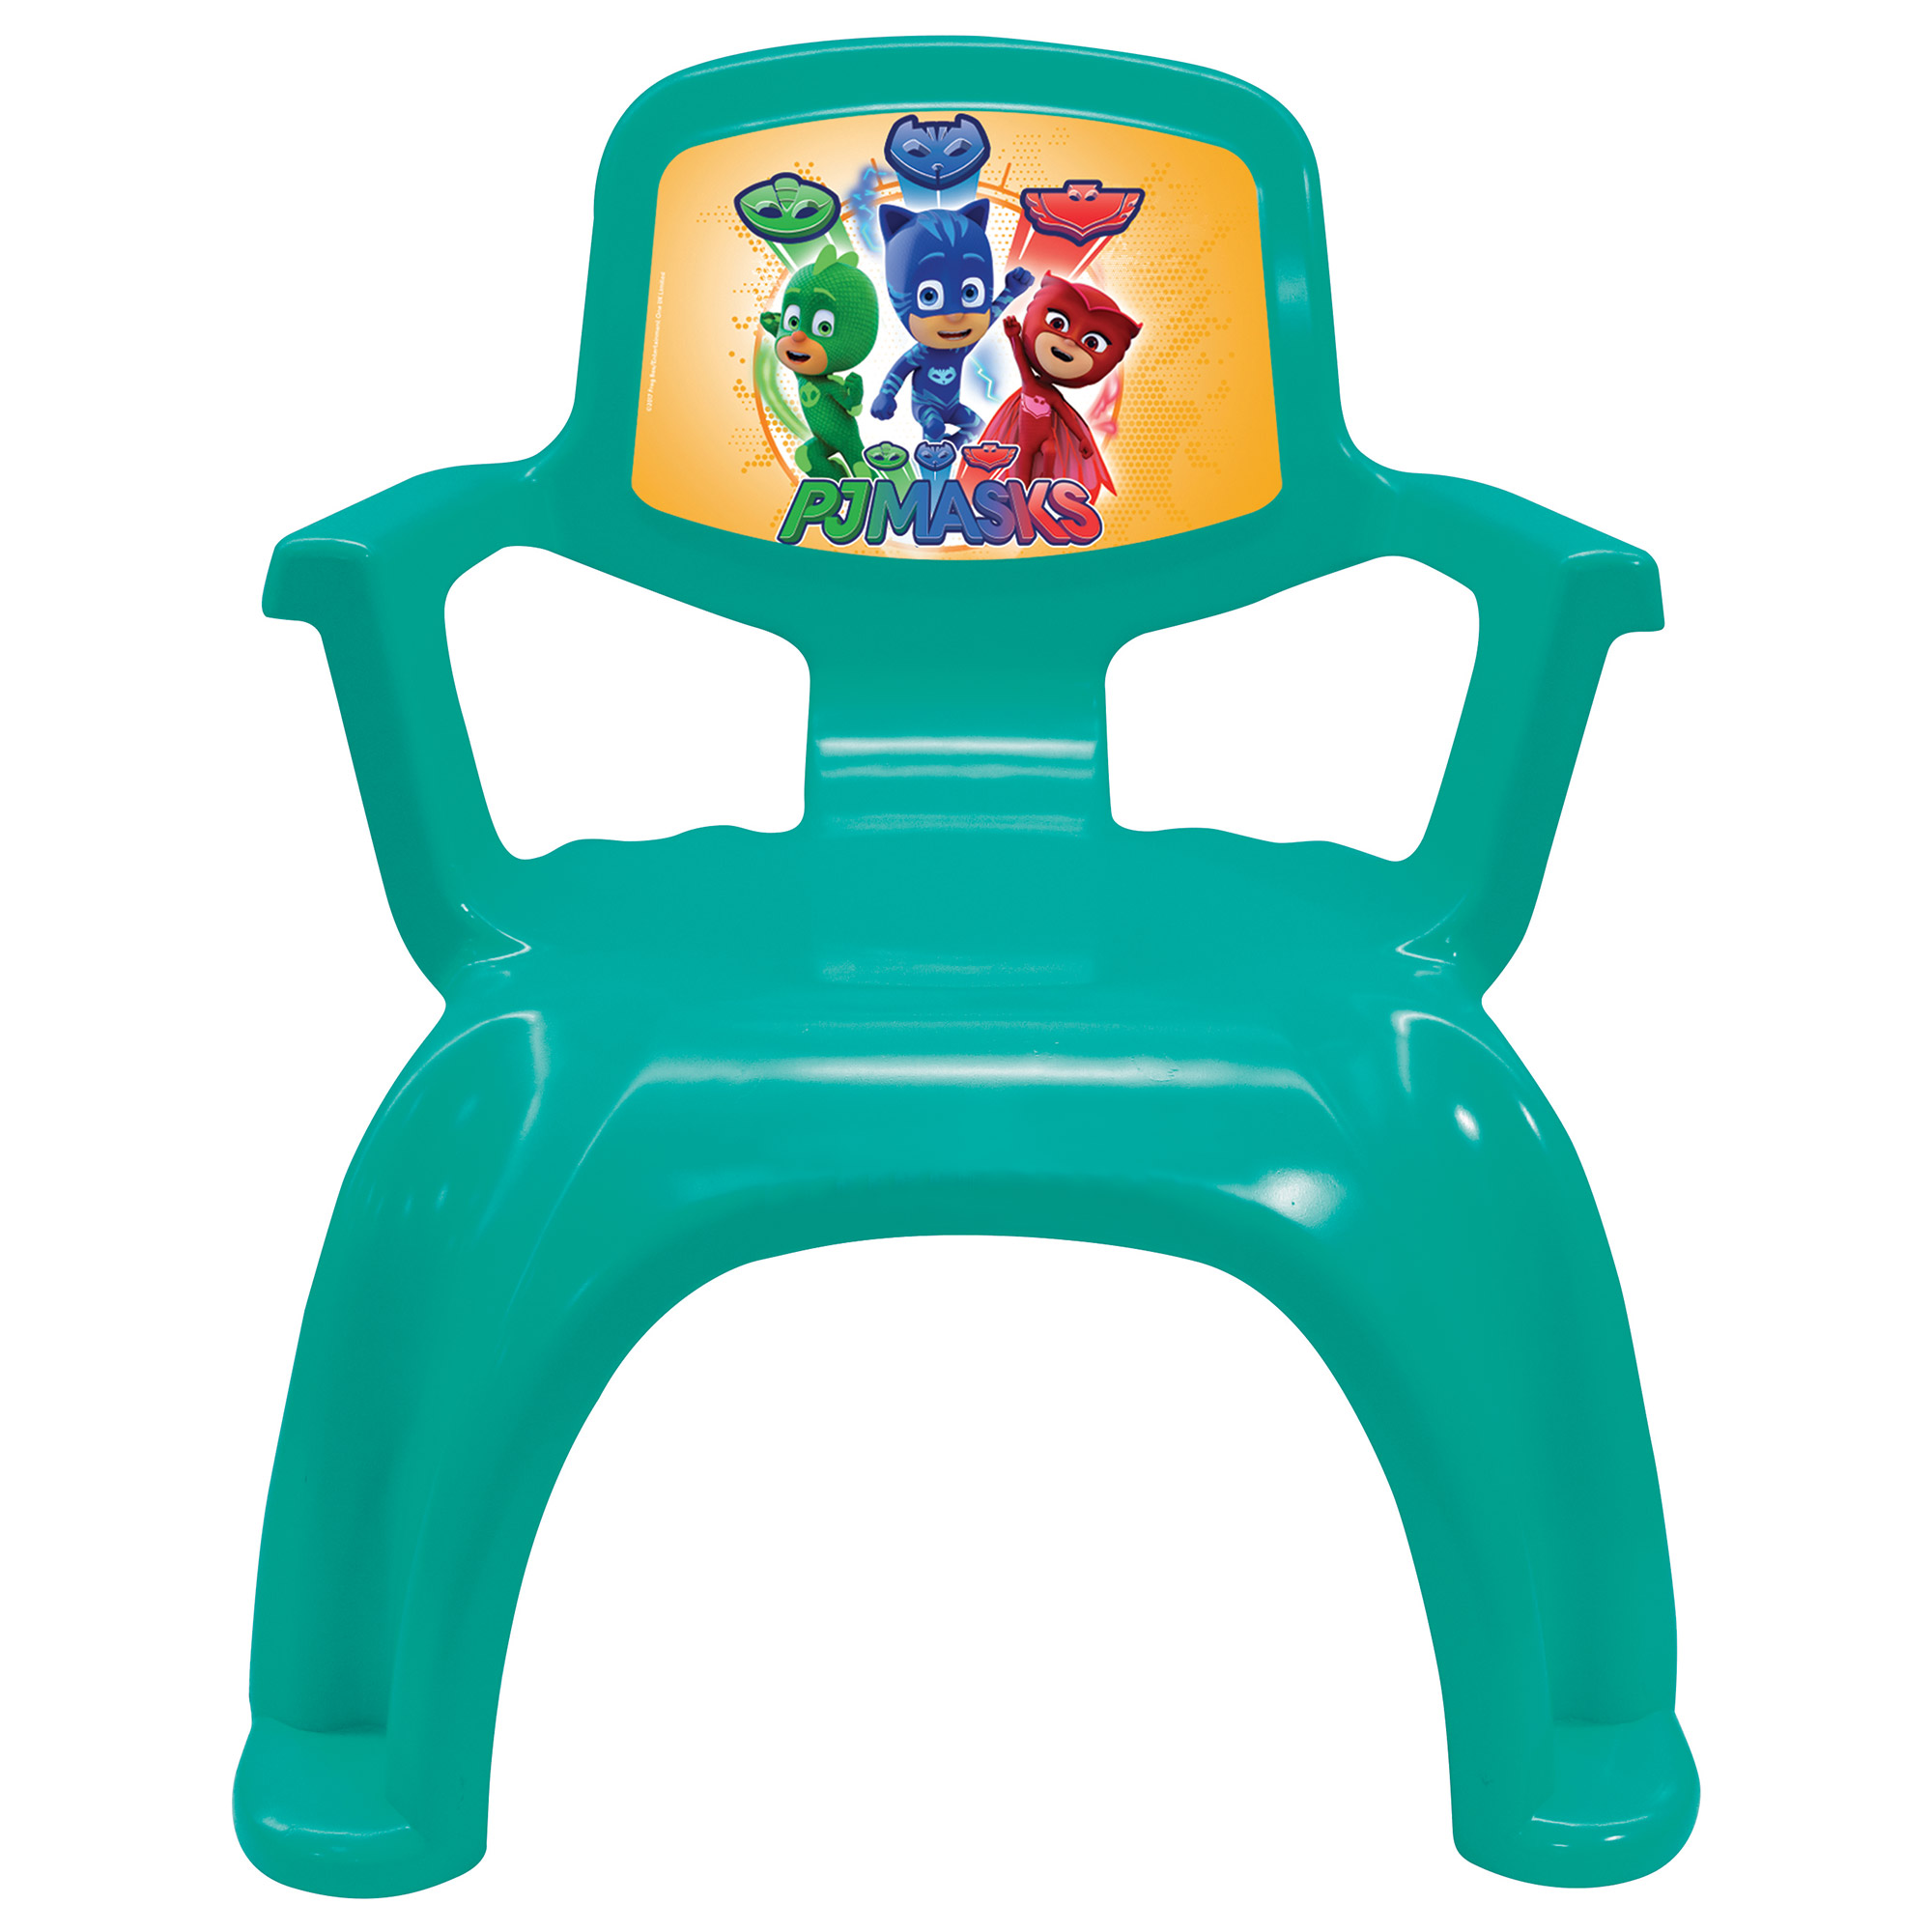 PJ Masks Resin Chair 2.0